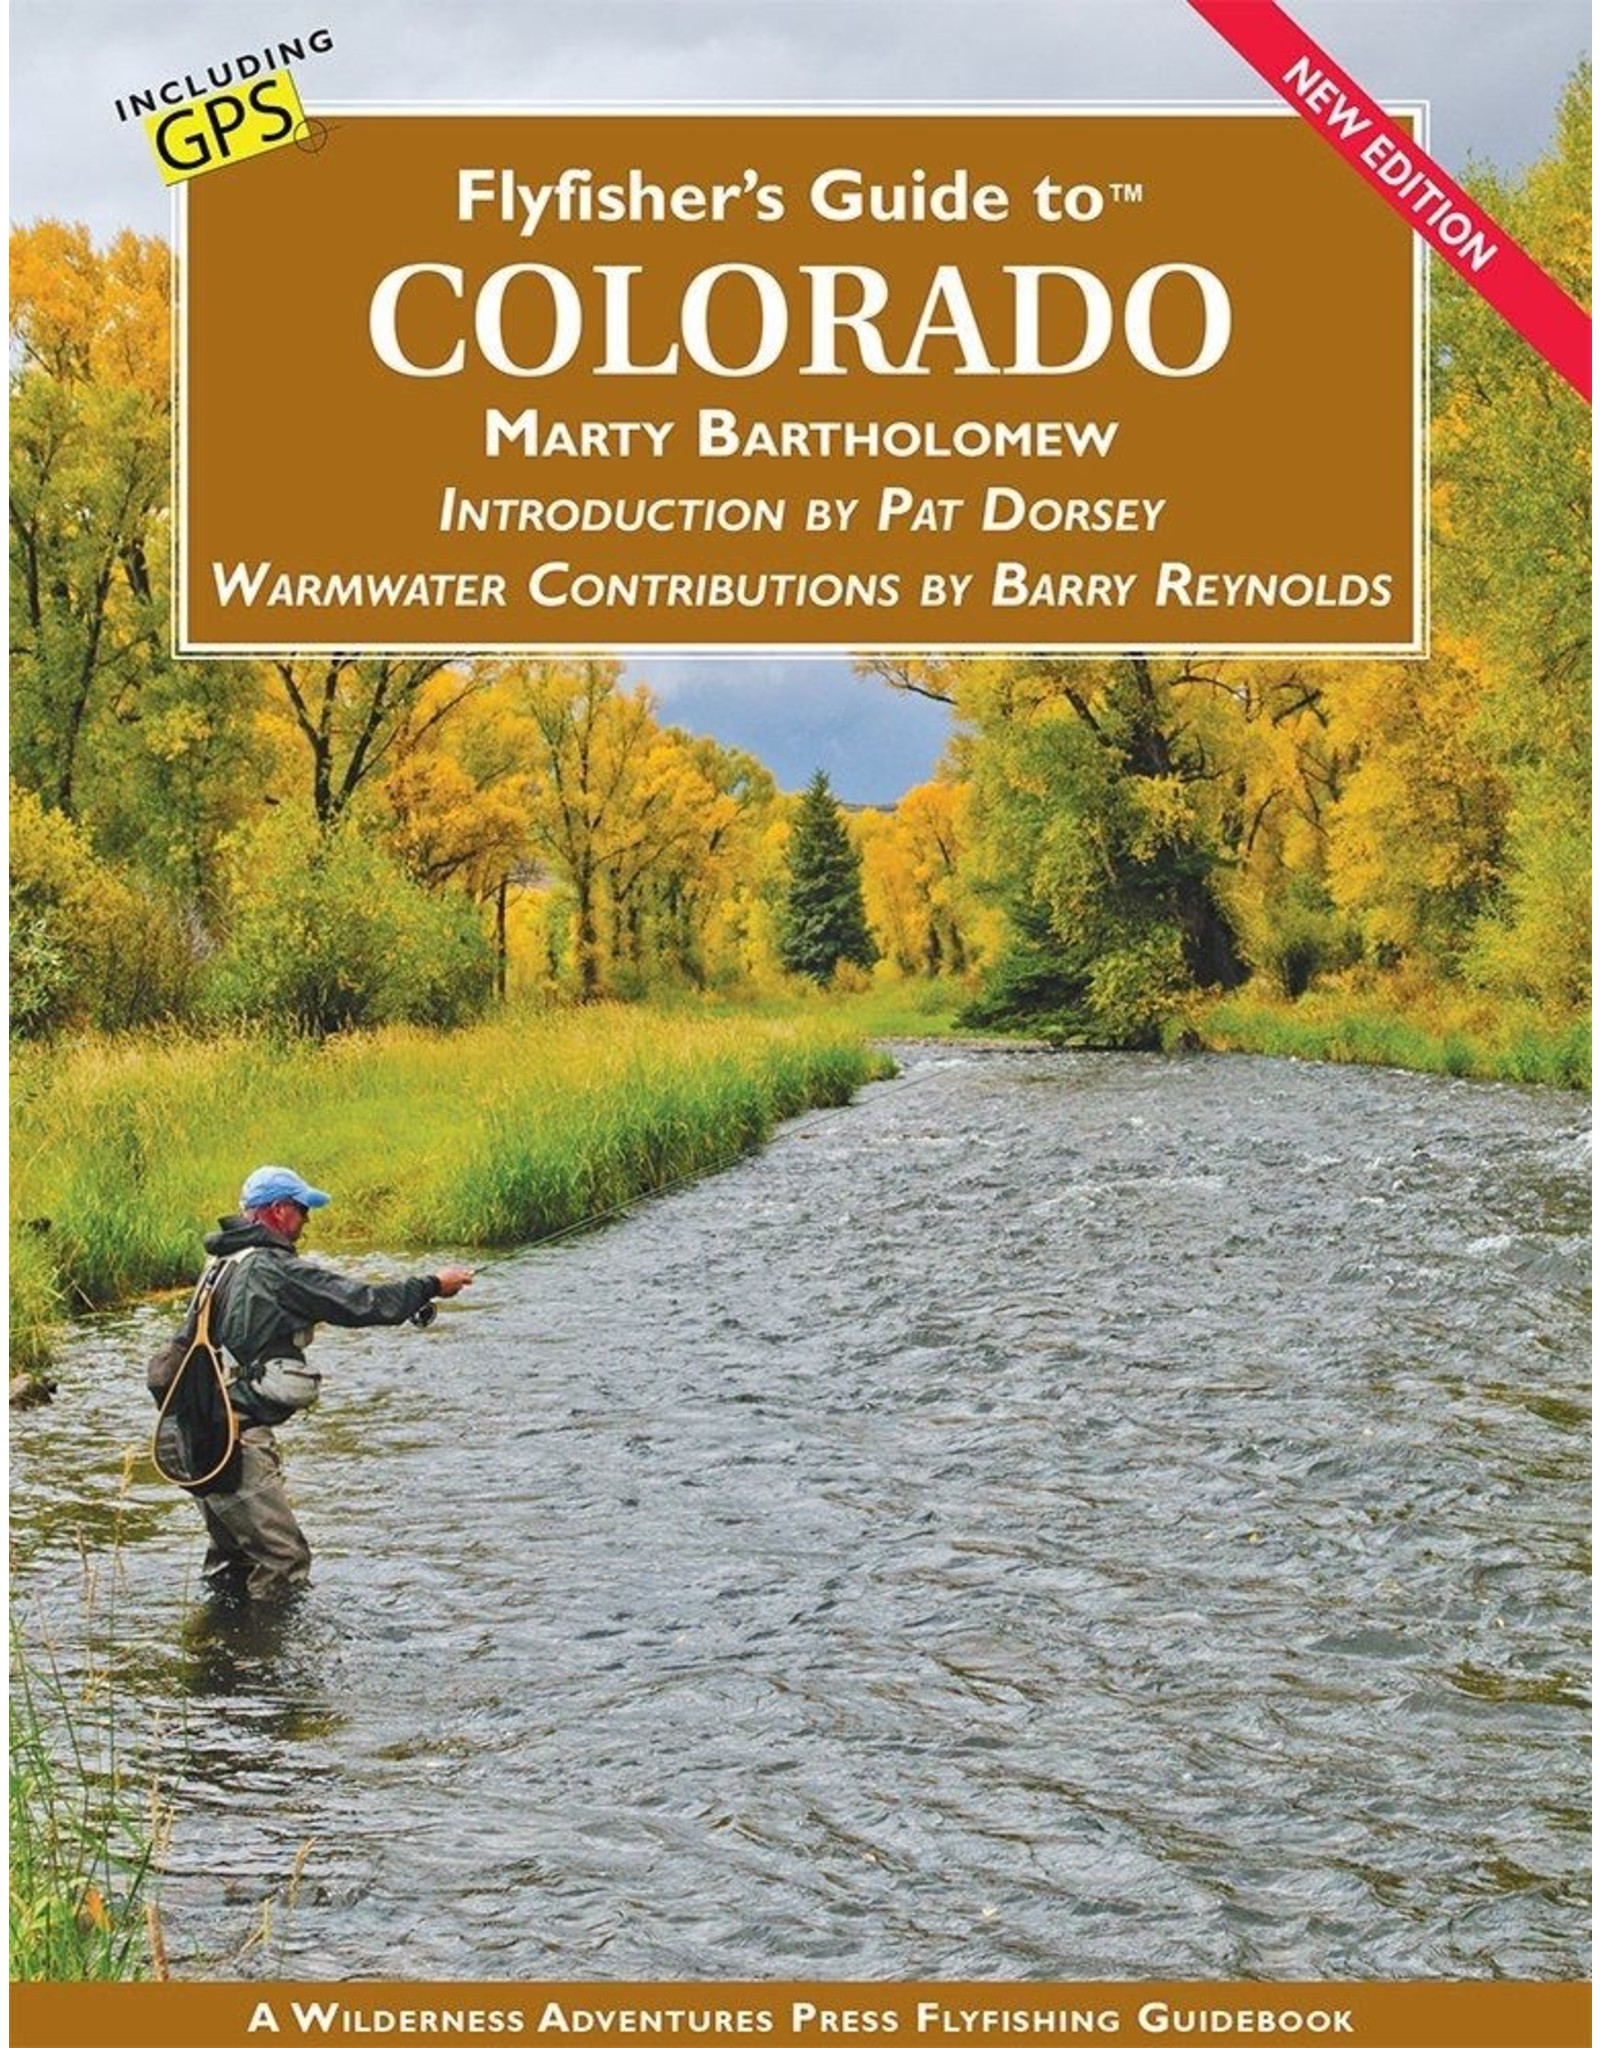 Books Flyfisher's Guide to Colorado